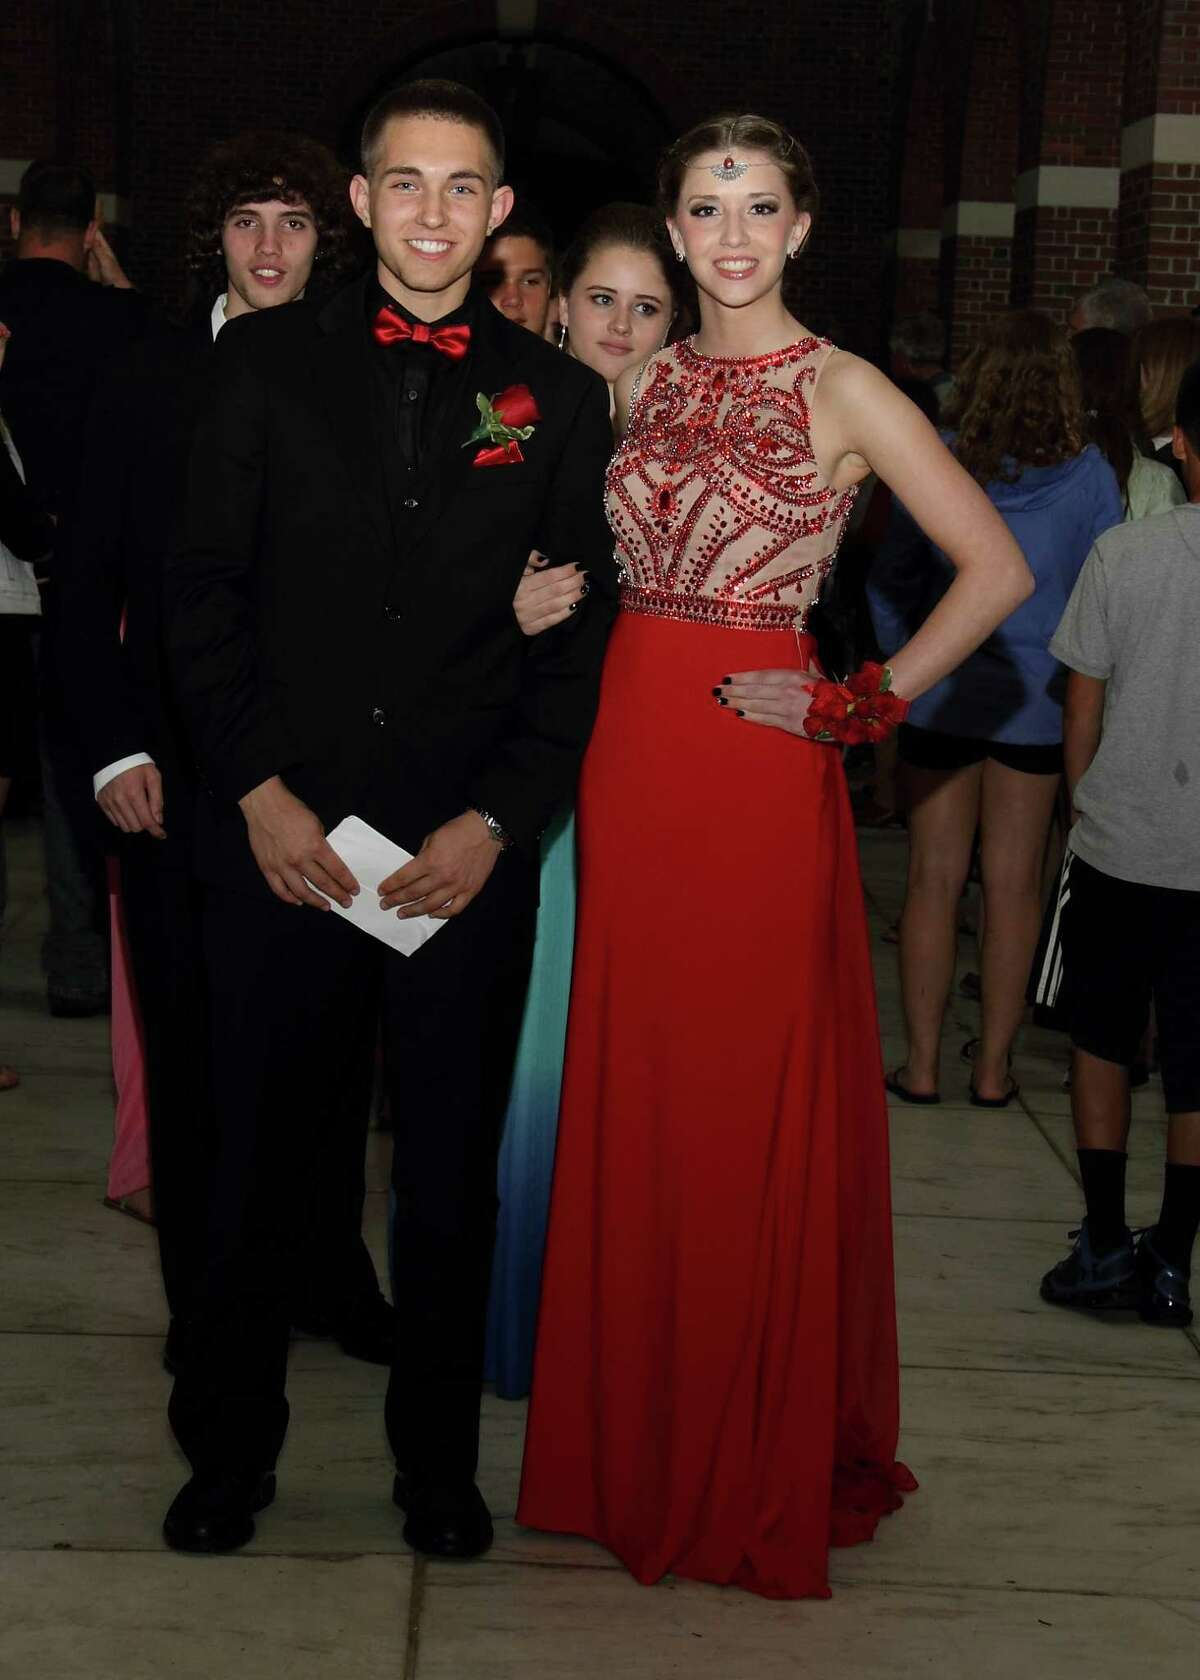 Were you Seen at the Burnt Hills/Ballston Lake Junior-Senior Prom at the Hall of Springs in Saratoga Springs on Friday, May 16, 2014?